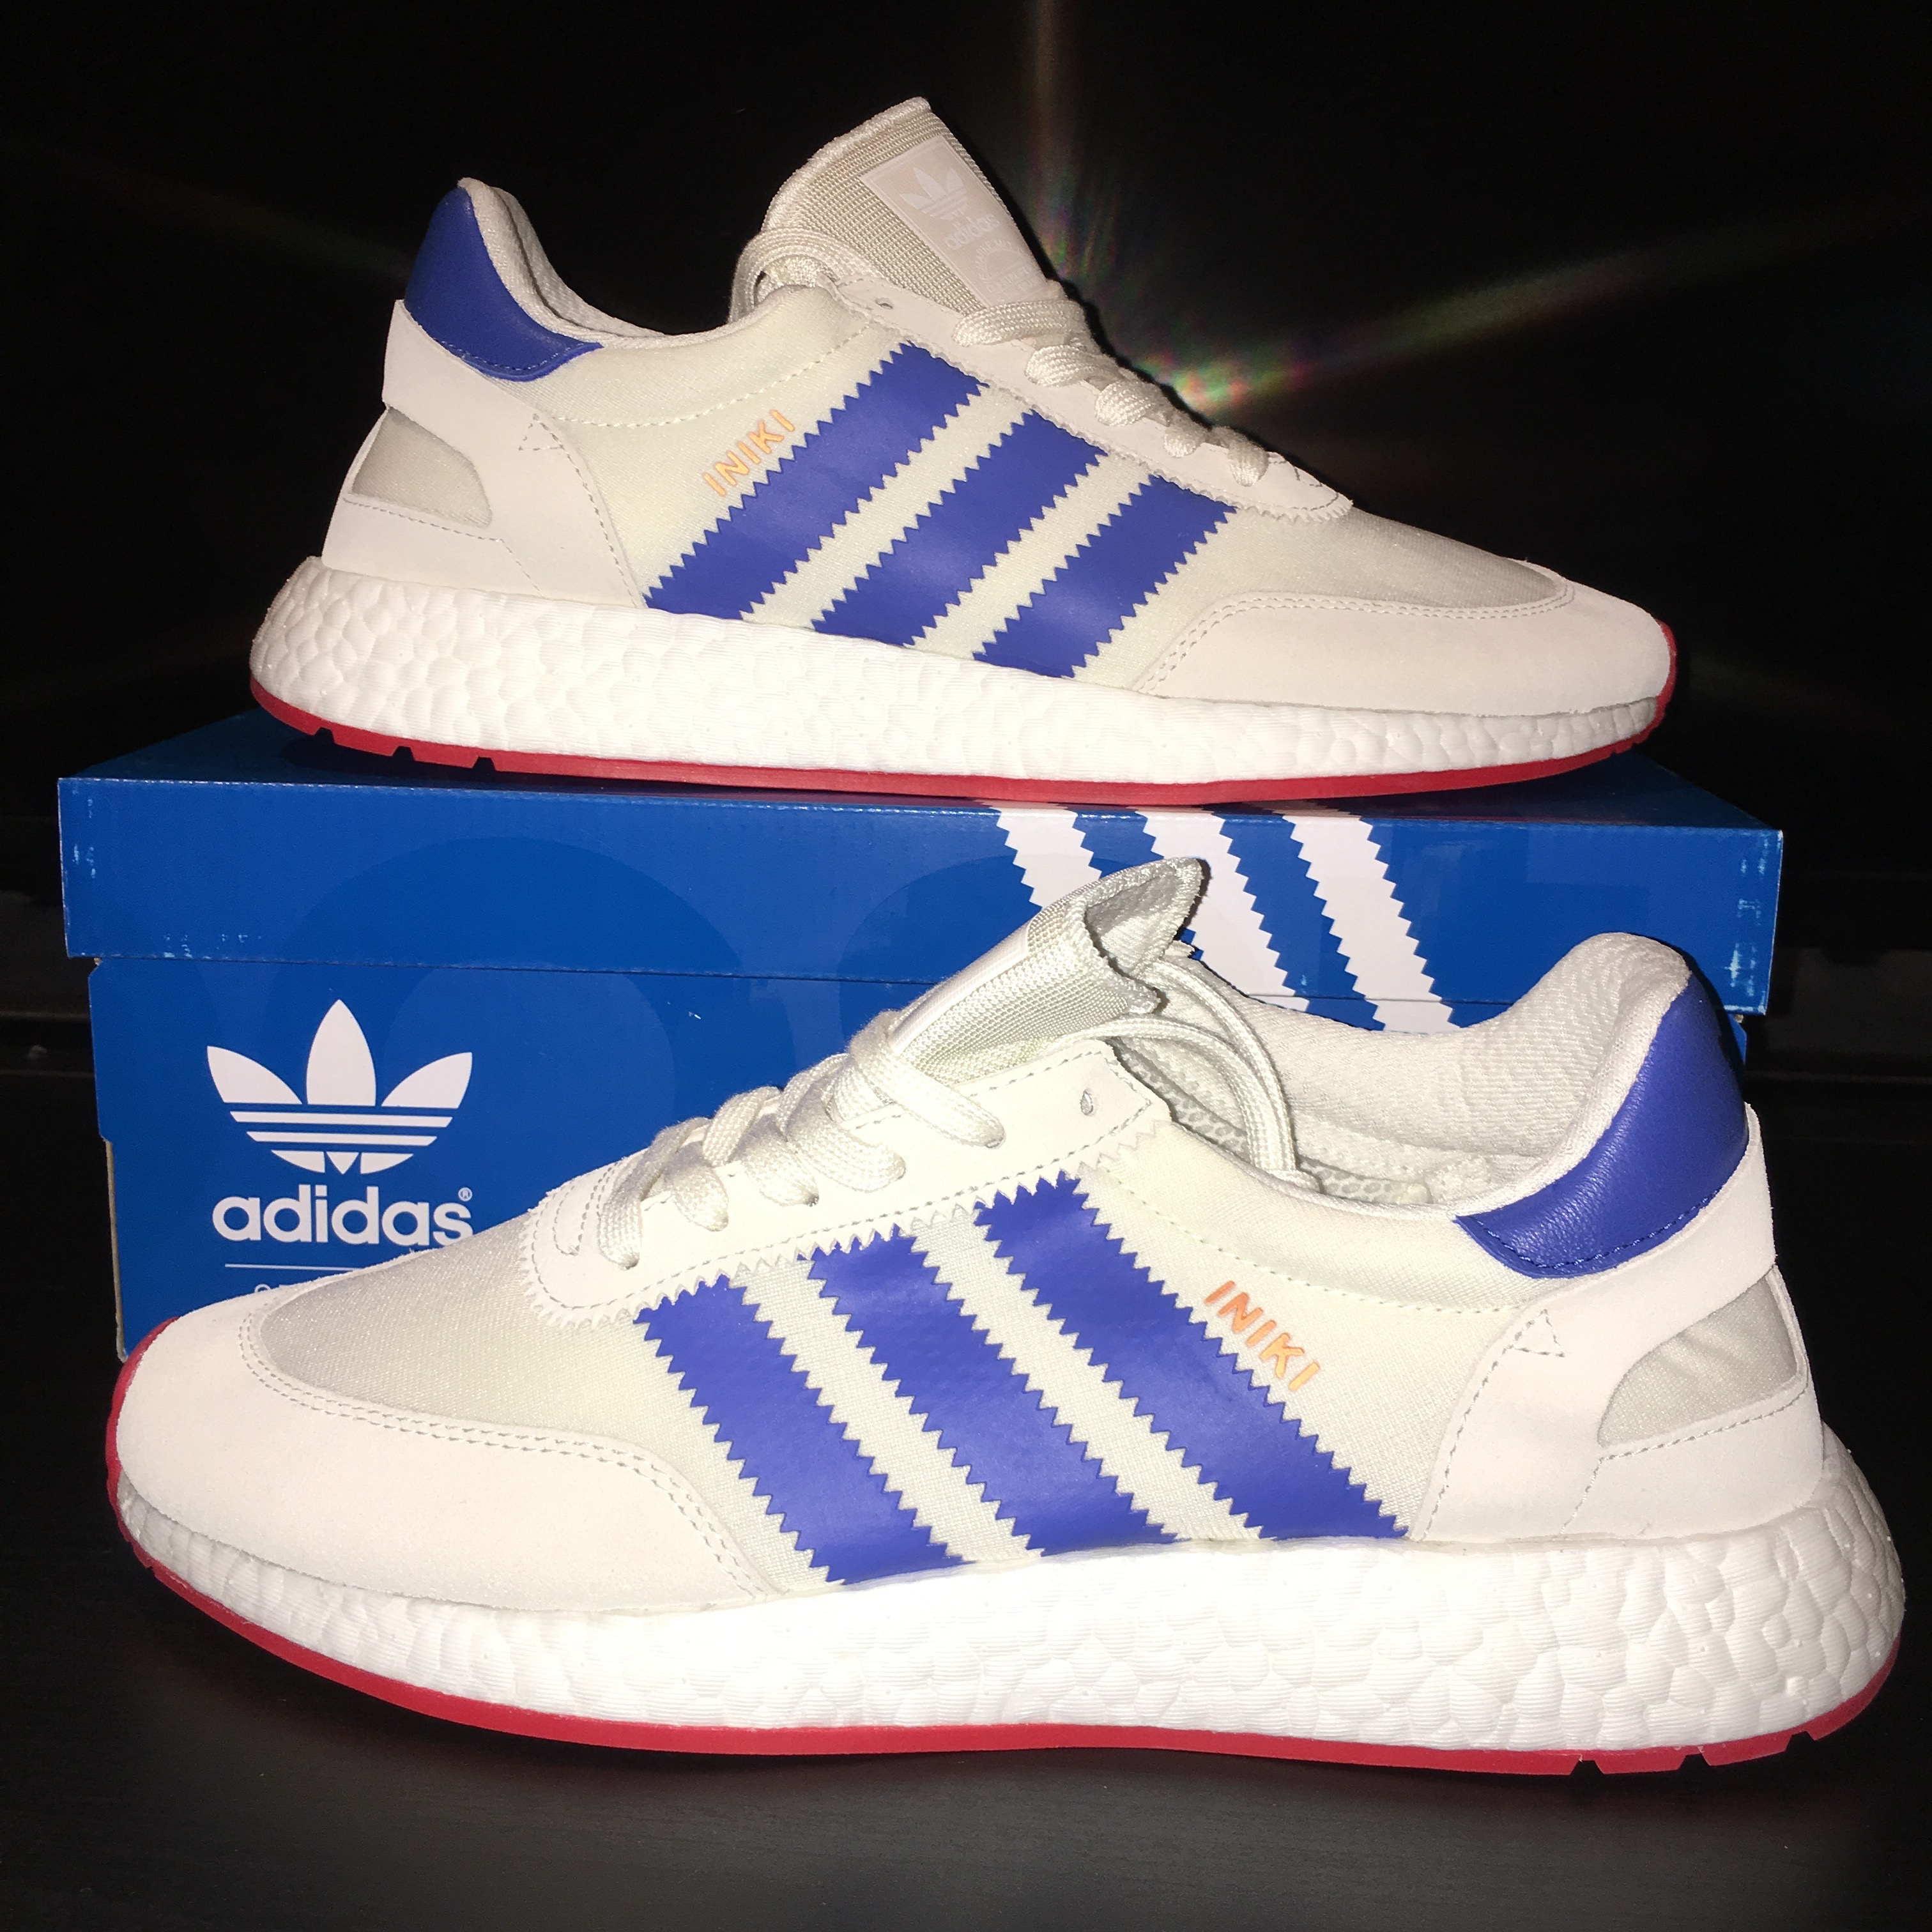 43e51940301a Adidas Iniki Runner Pride of the 70s BB2093 Size 9.5 - Low-Top Sneakers for  Sale - Grailed